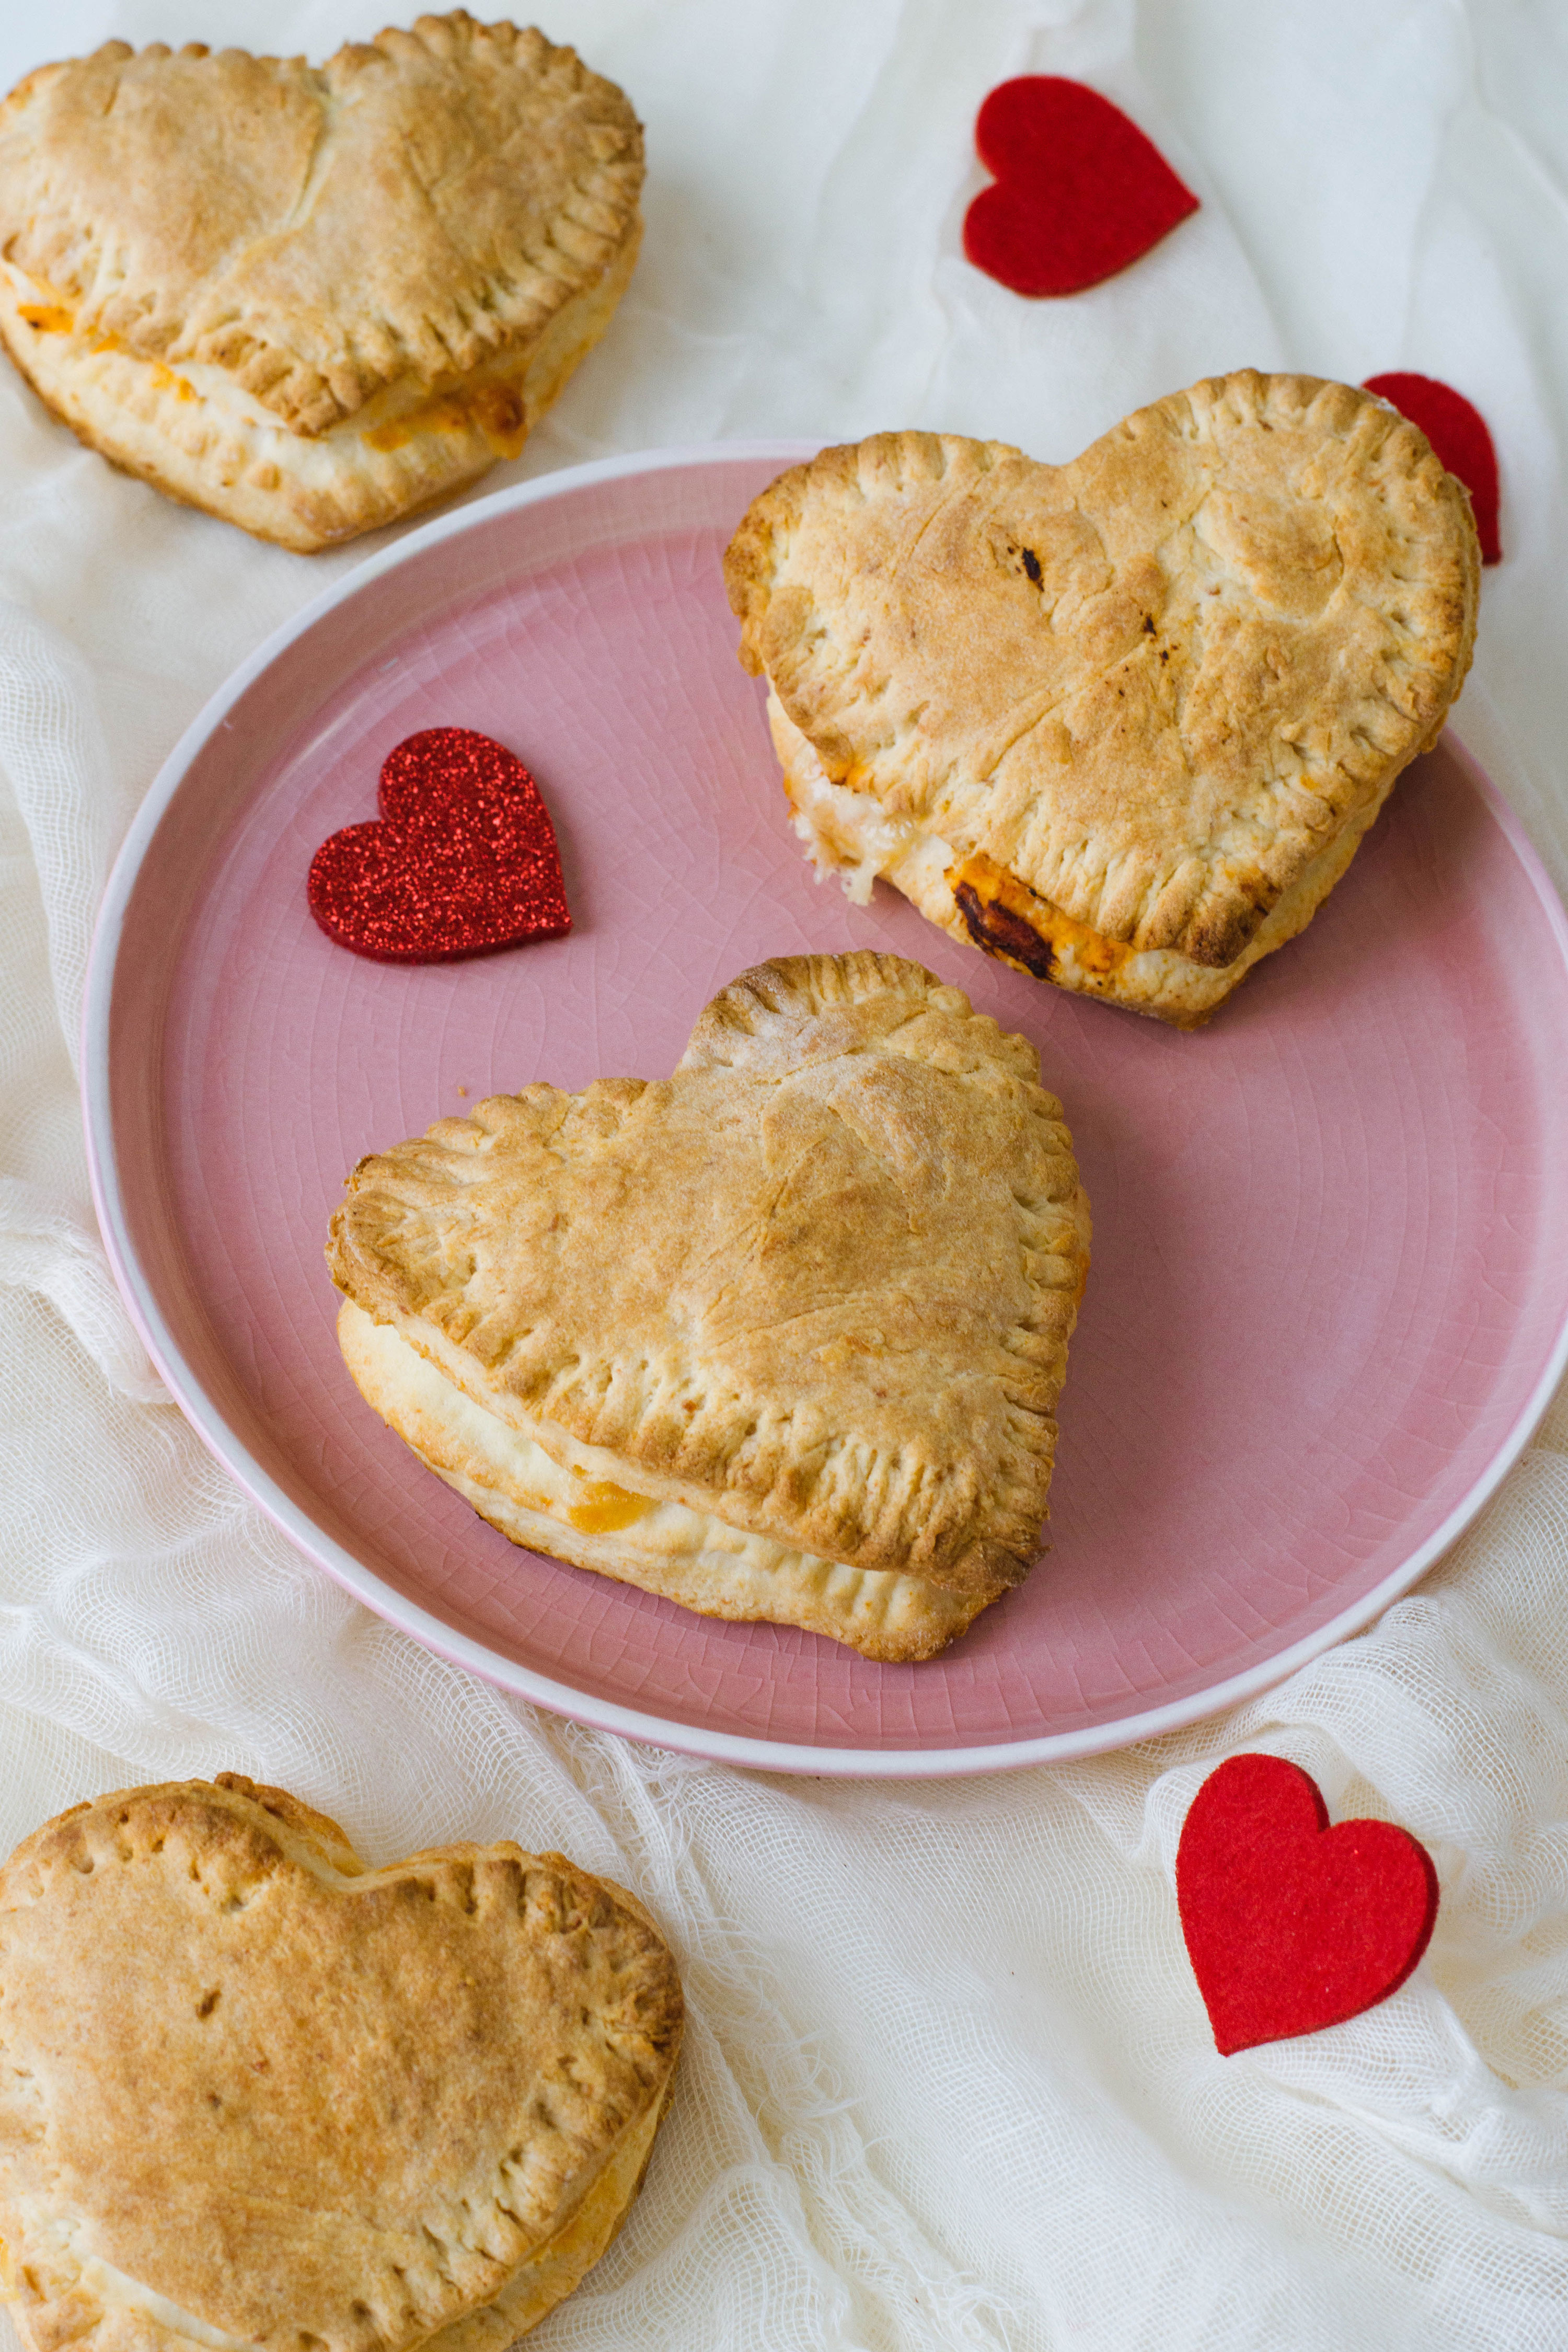 Homemade Pizza Pockets for Valentine's Day